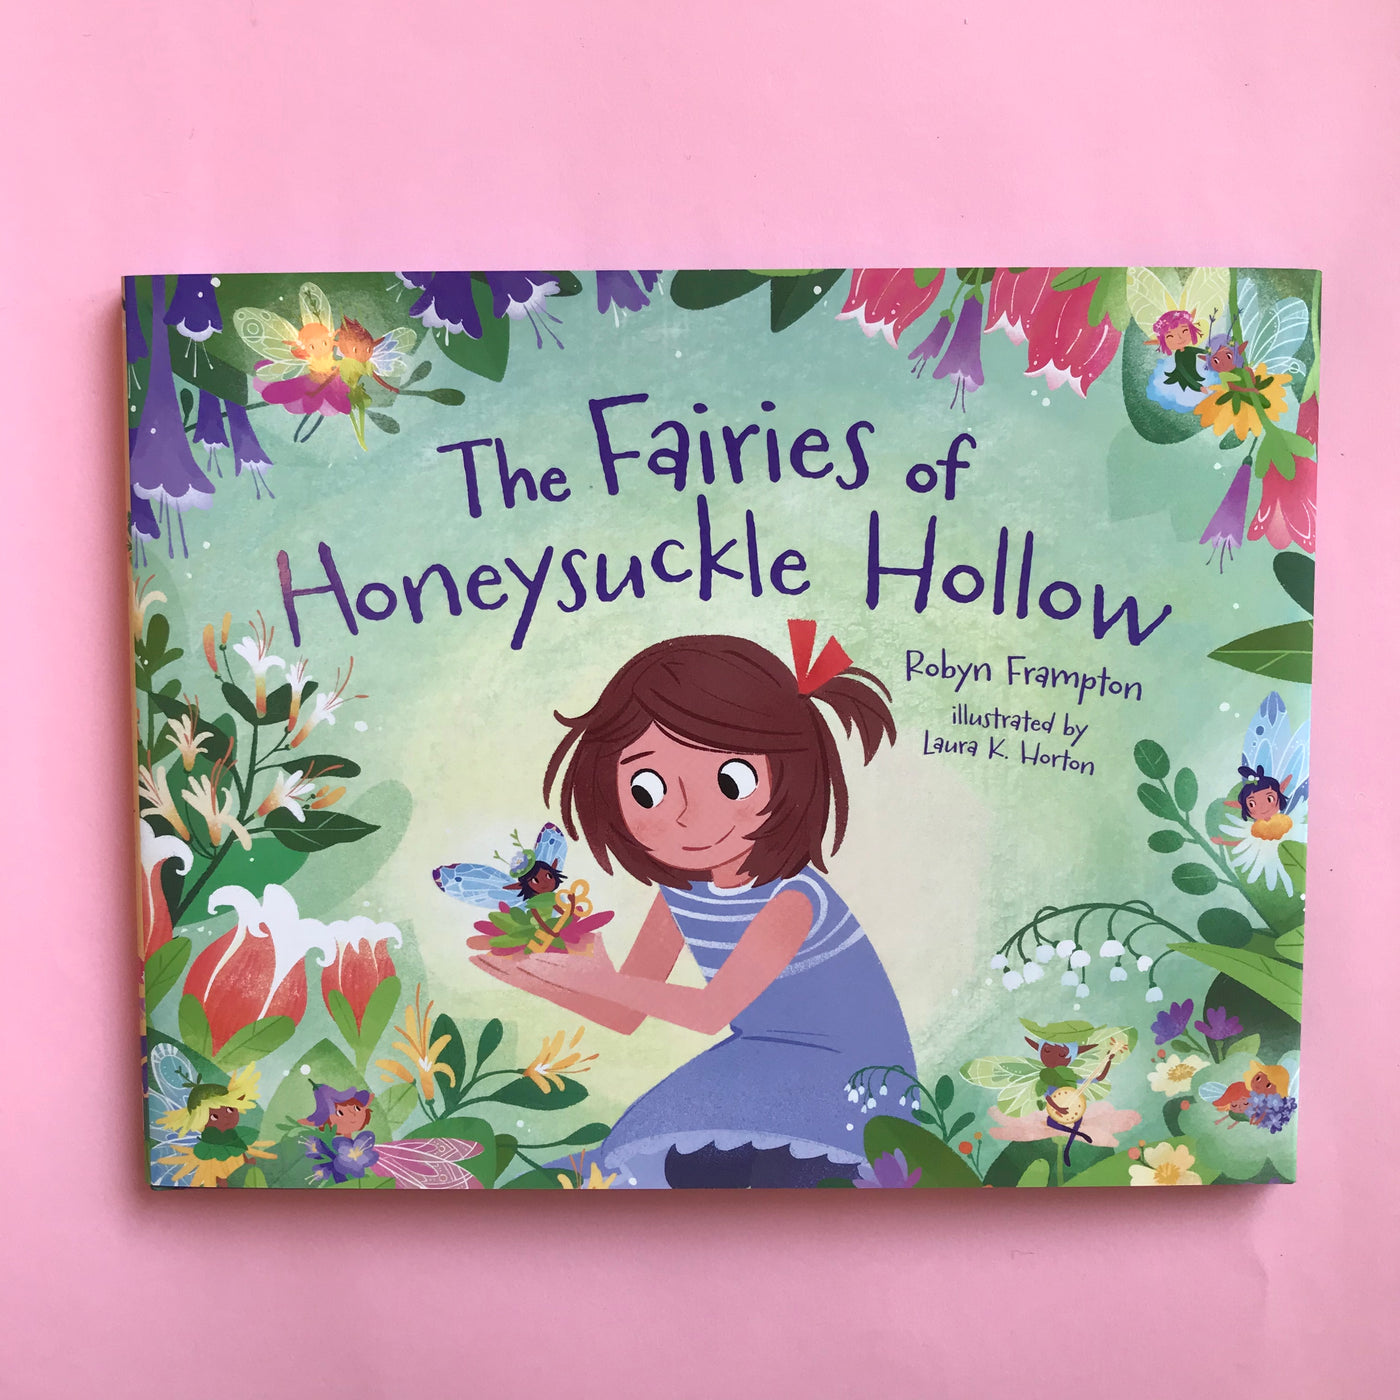 The Fairies of Honeysuckle Hollow by Robyn Frampton